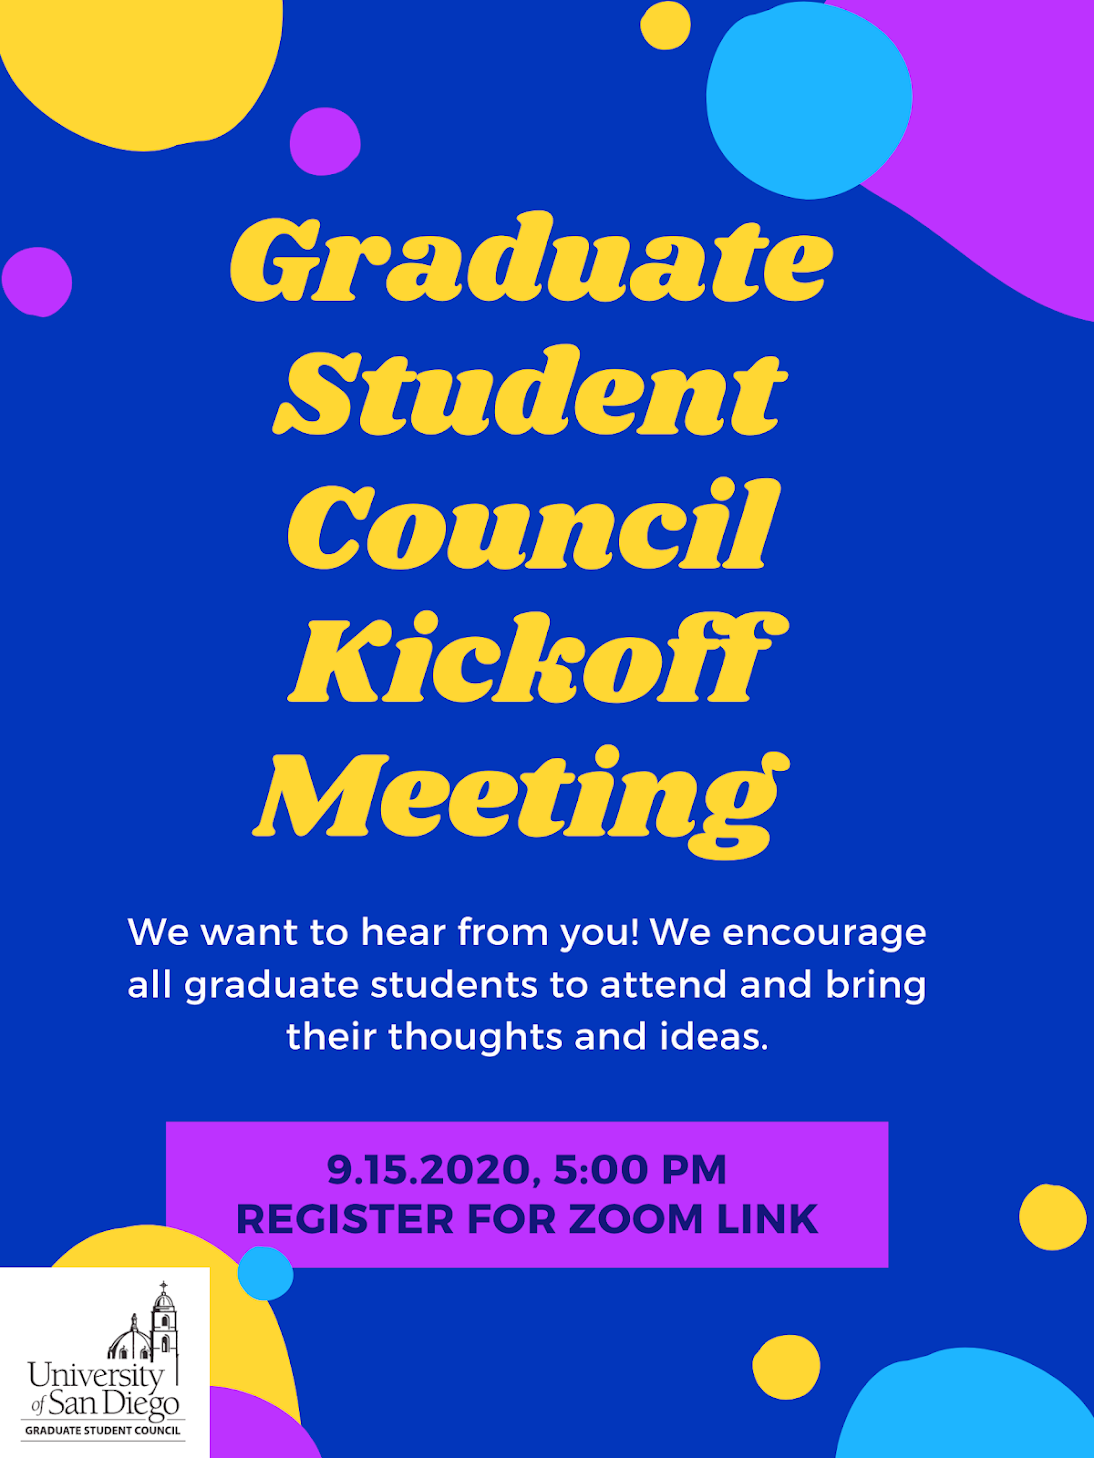 GSC Kick-off Meeting, September 15 from 5-6pm